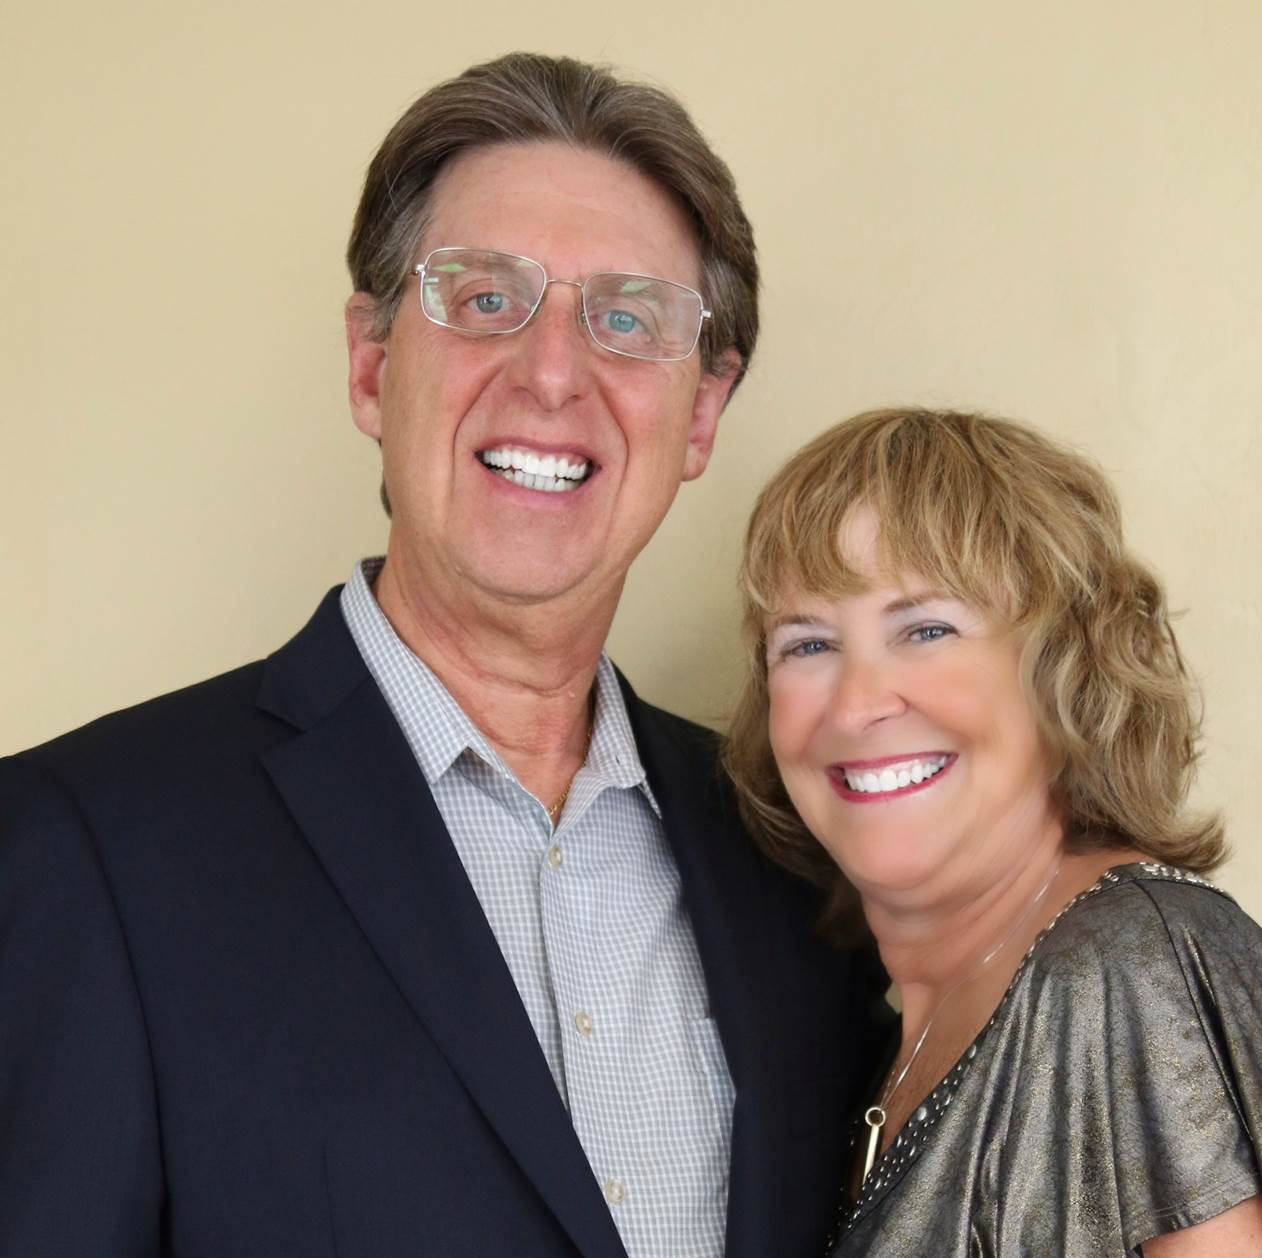 Chuck and Cassie Conrad, Owners of Interim HealthCare of Charlotte County, FL